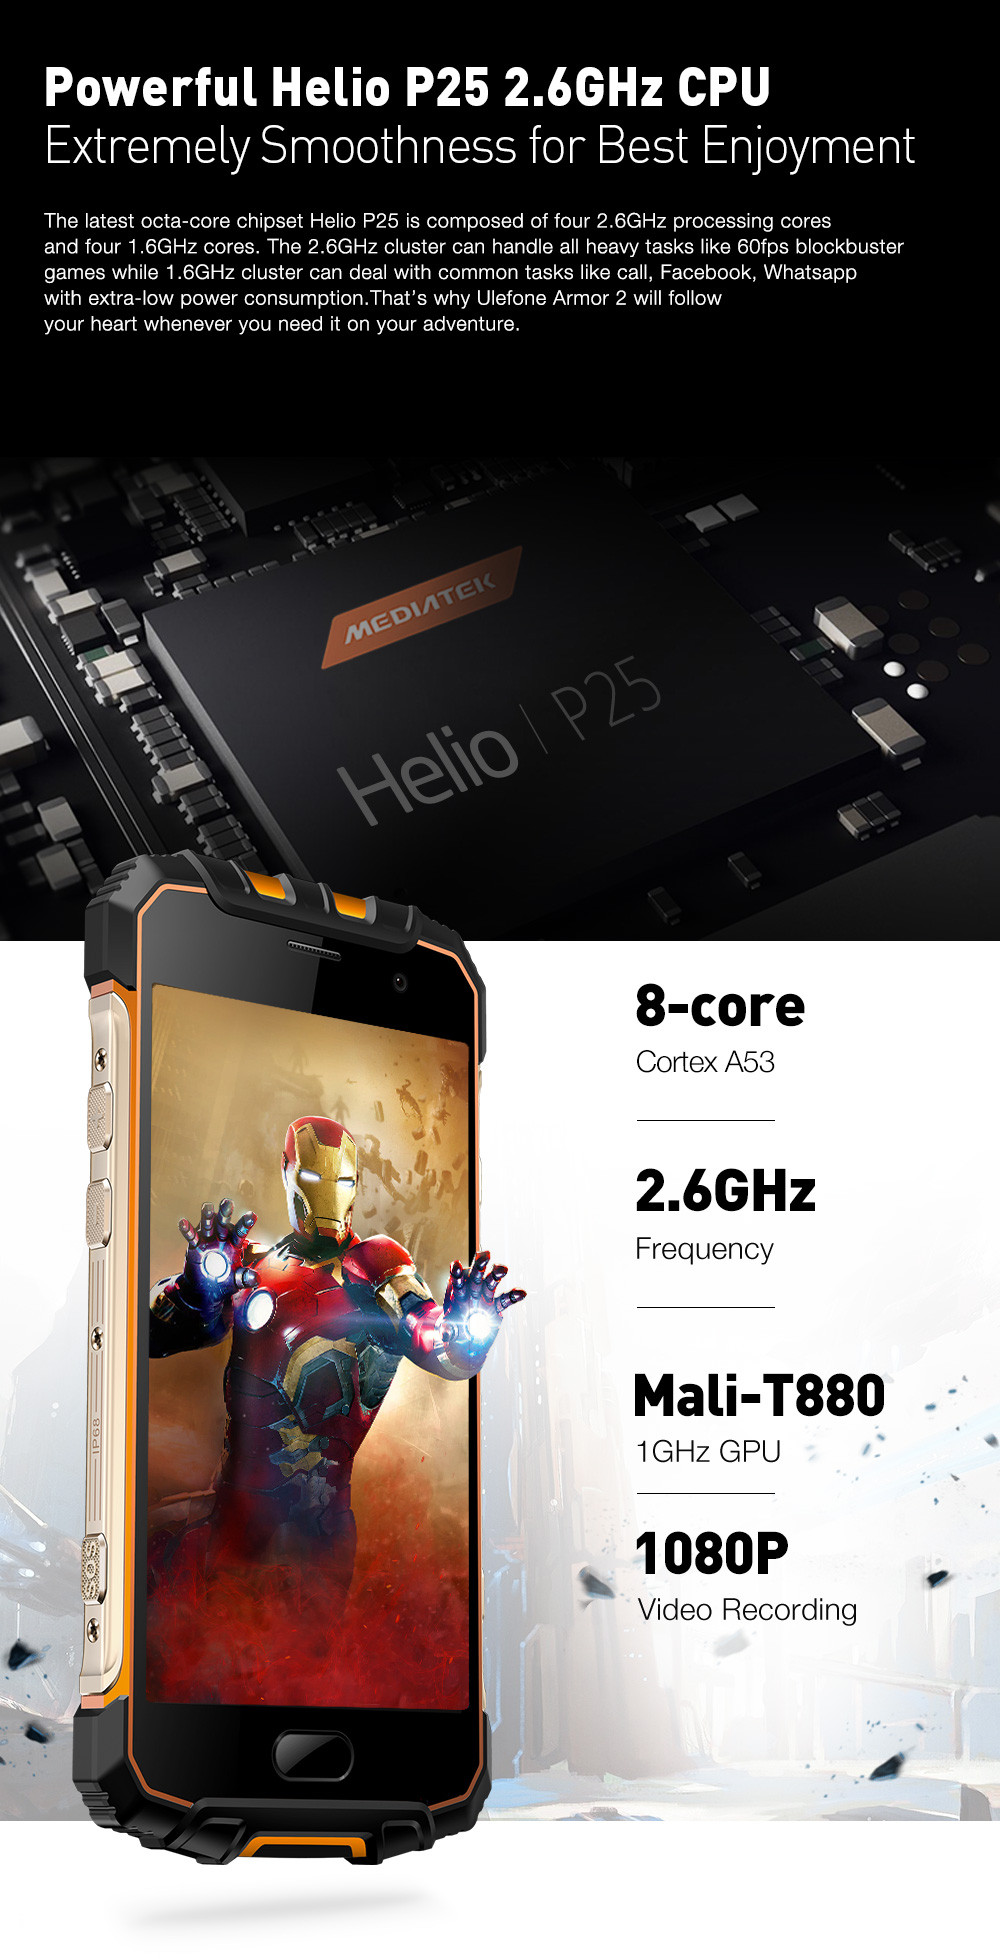 Ulefone Armor 2 4G Smartphone Android 7.0 5.0 inch Helio P25 Octa Core 2.6GHz 6GB RAM 64GB ROM IP68 Waterproof NFC 16.0MP Rear Camera- Golden